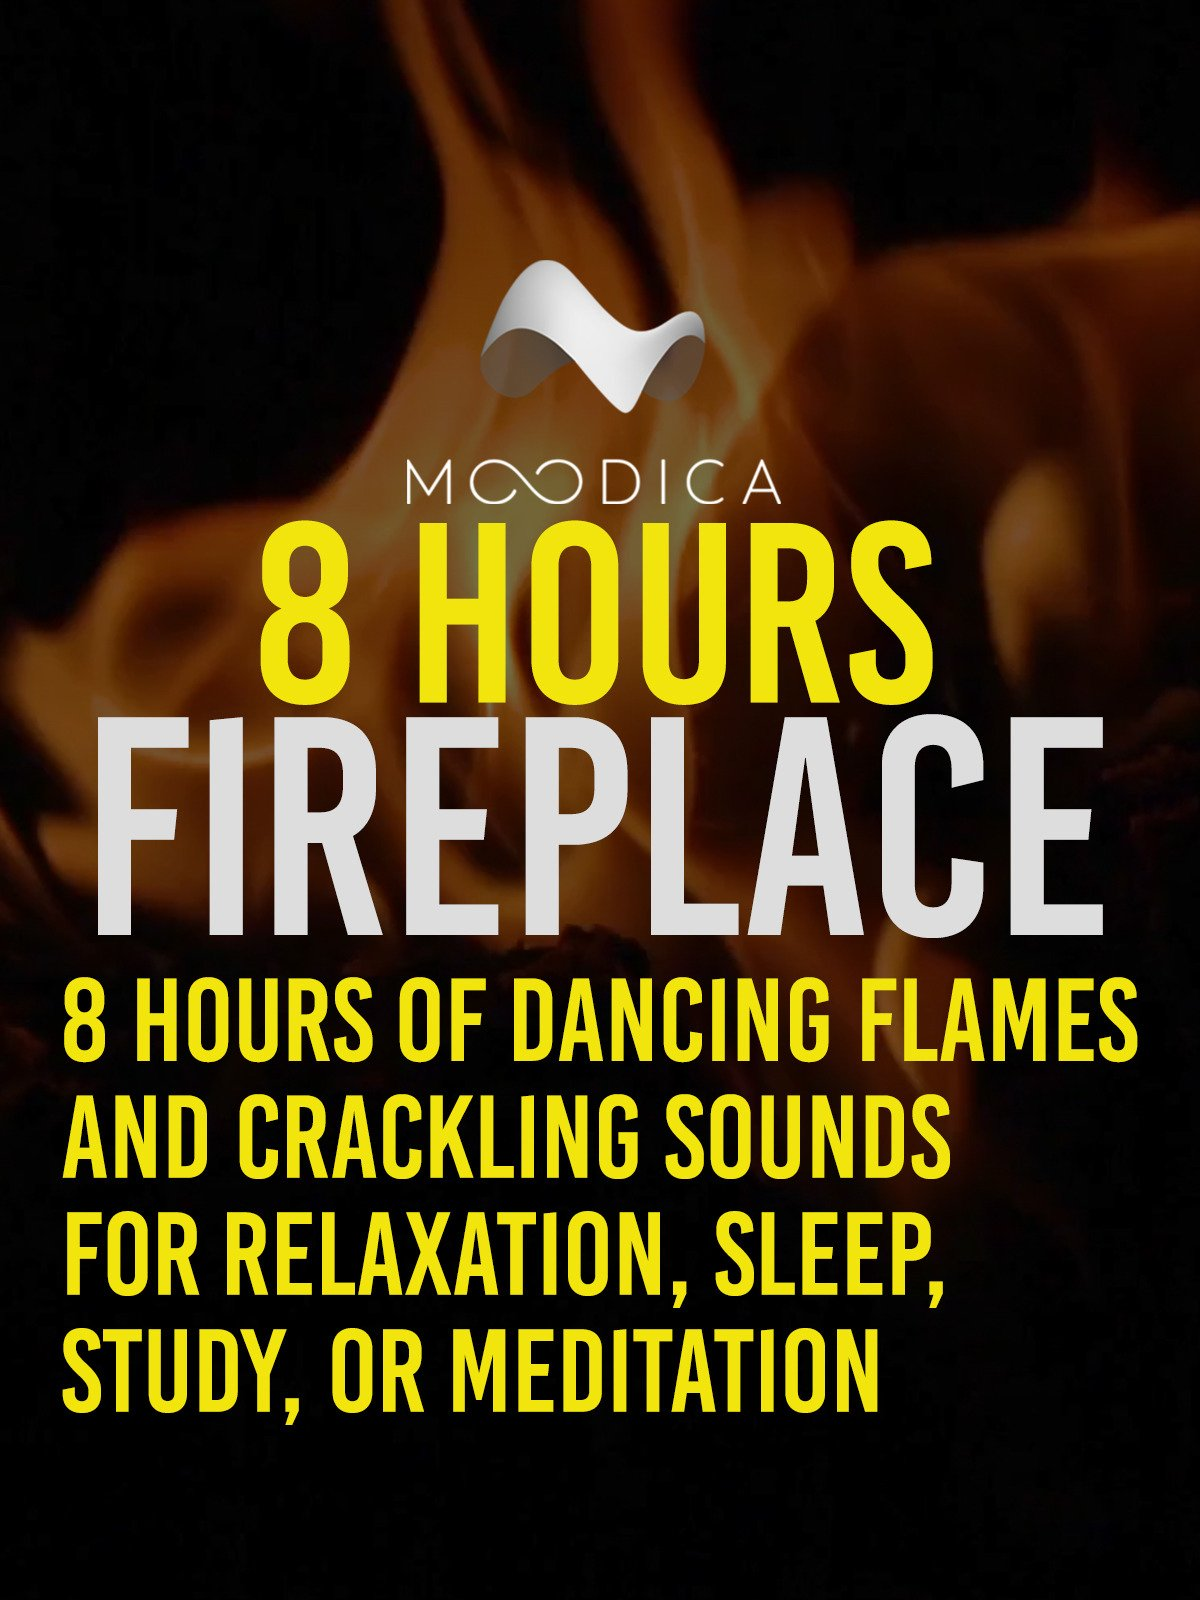 8 Hours: Fireplace: 8 Hours of Dancing Flames and Crackling Sounds For Relaxation, Sleep, Study, Or Meditation